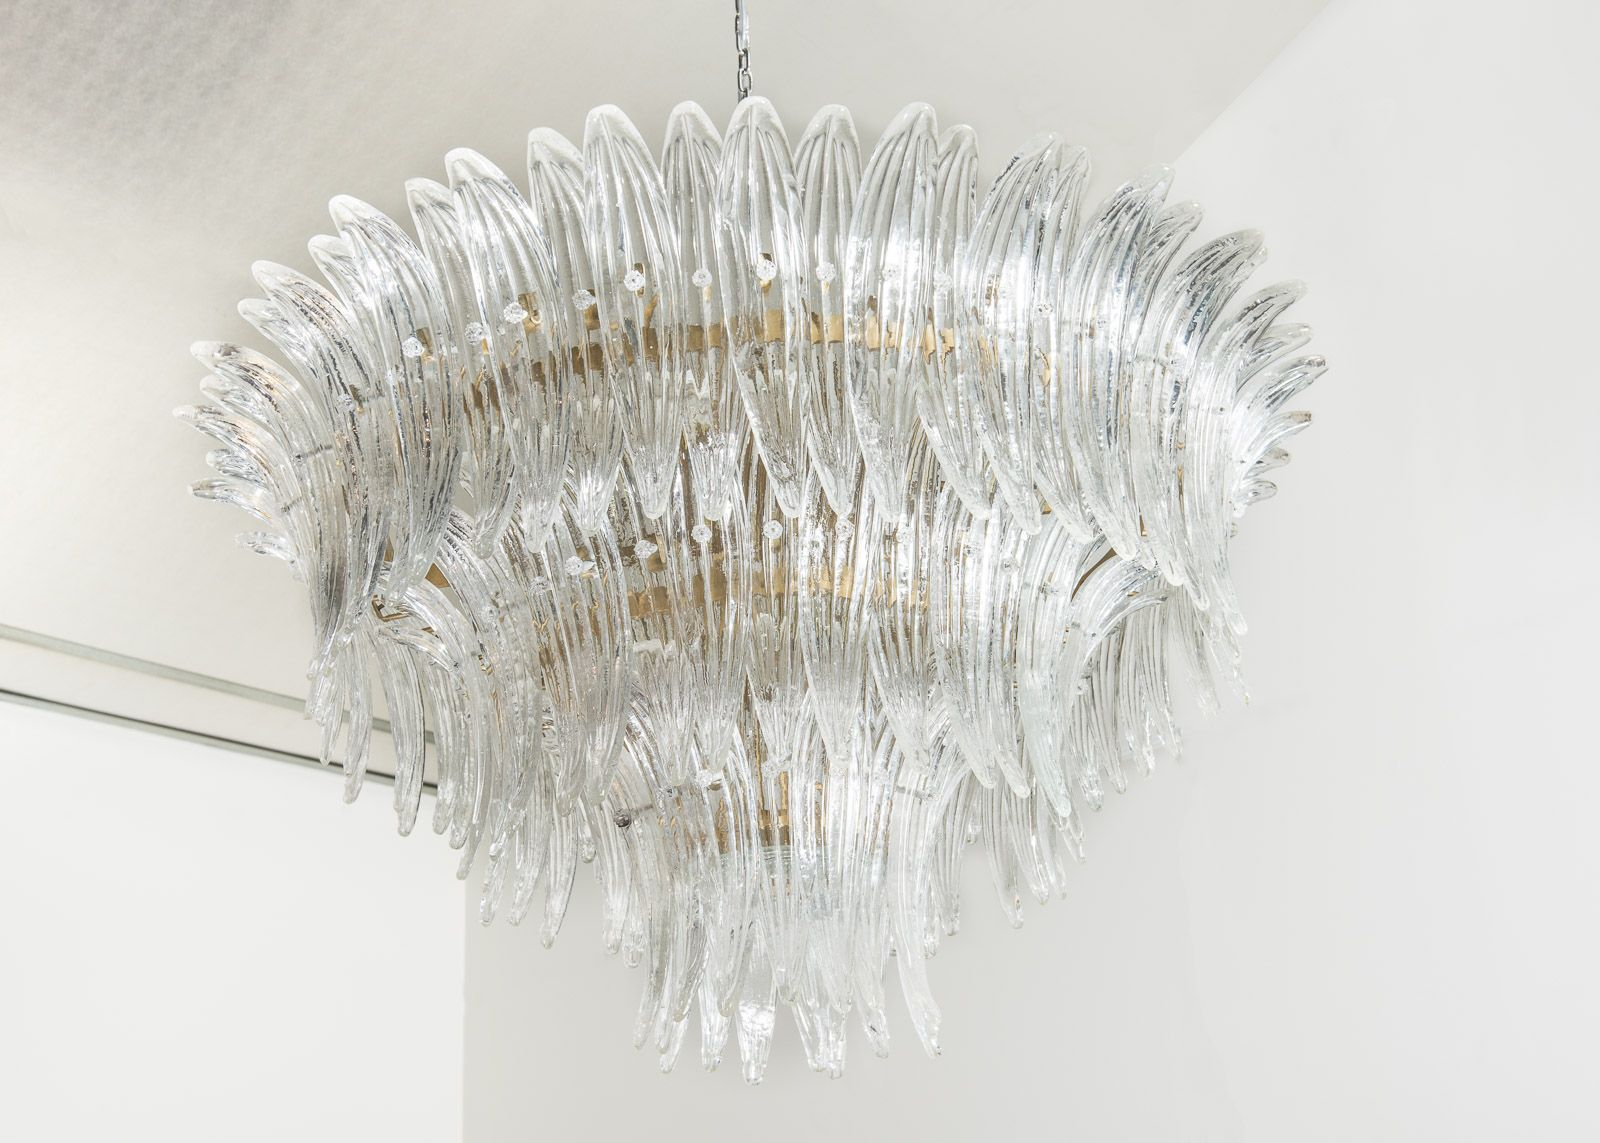 Chandelier by murano model palm circa 1940 lighting pinterest chandelier by murano model palm circa 1940 antique furniture storessell aloadofball Choice Image